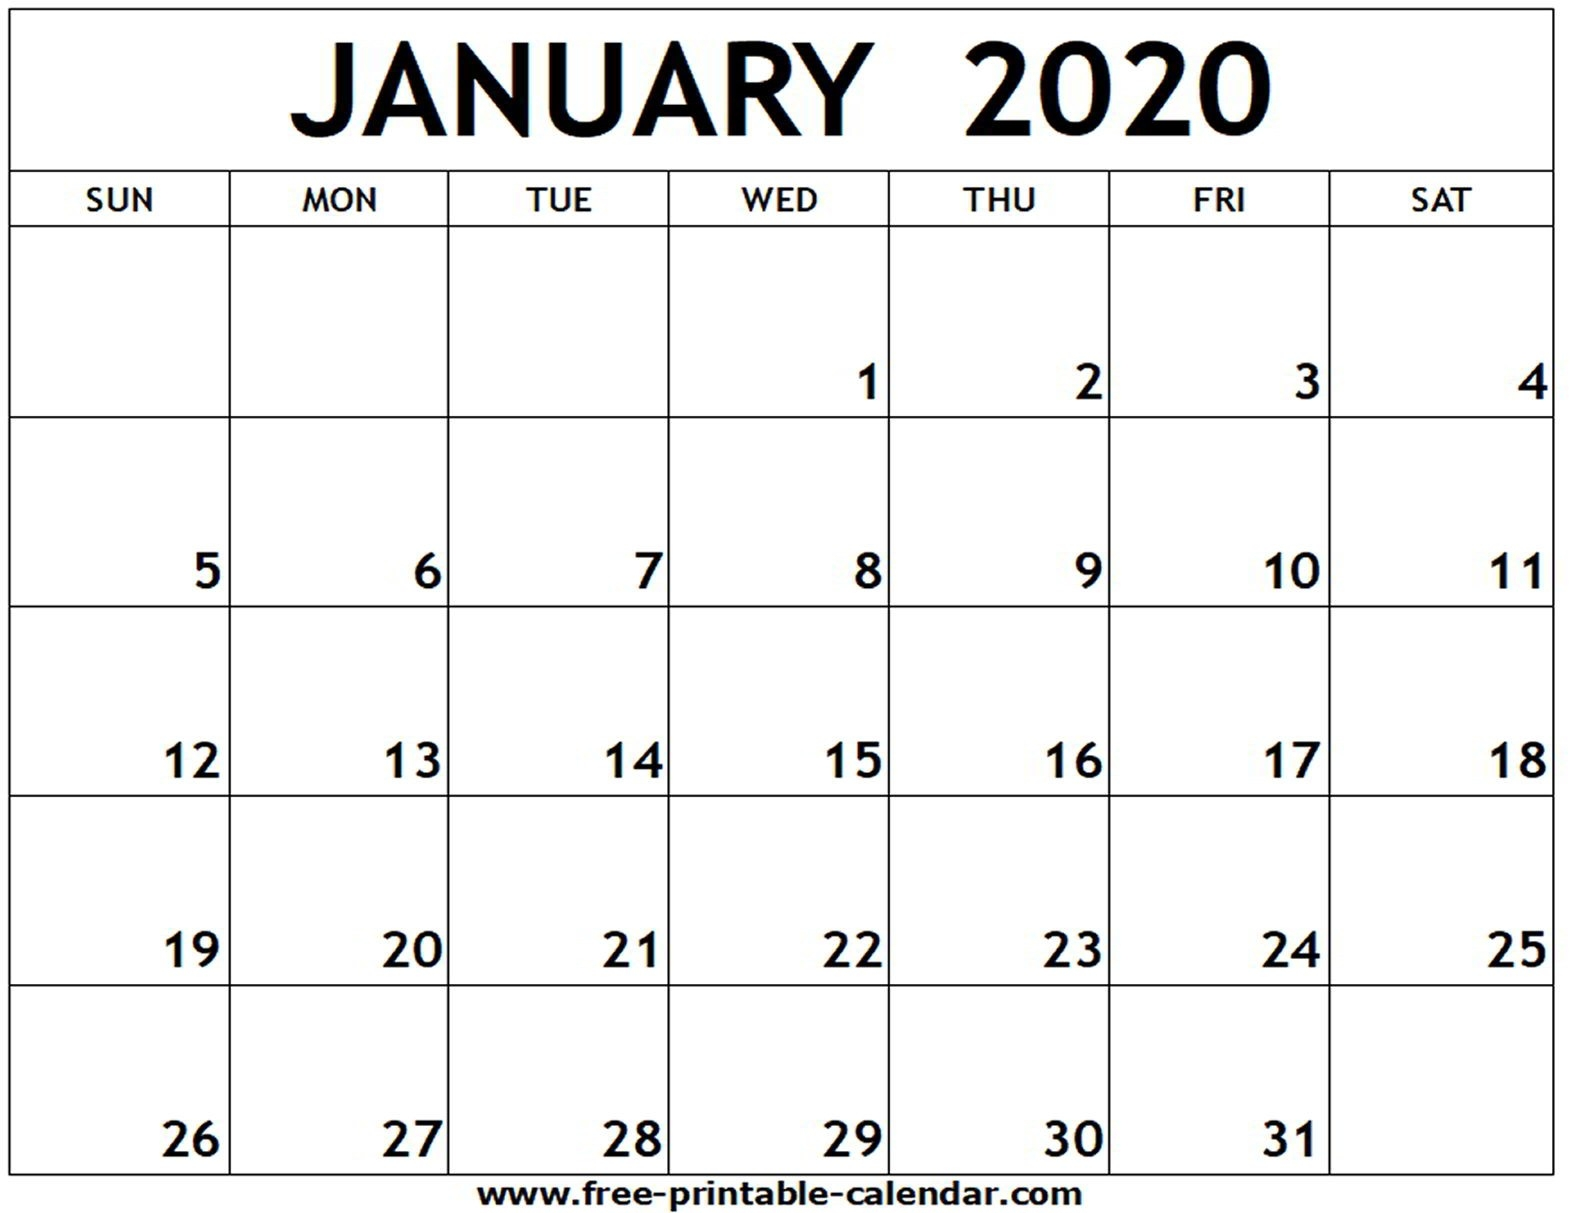 January 2020 Printable Calendar - Free-Printable-Calendar-Blank Calendar 2020 To Fill In